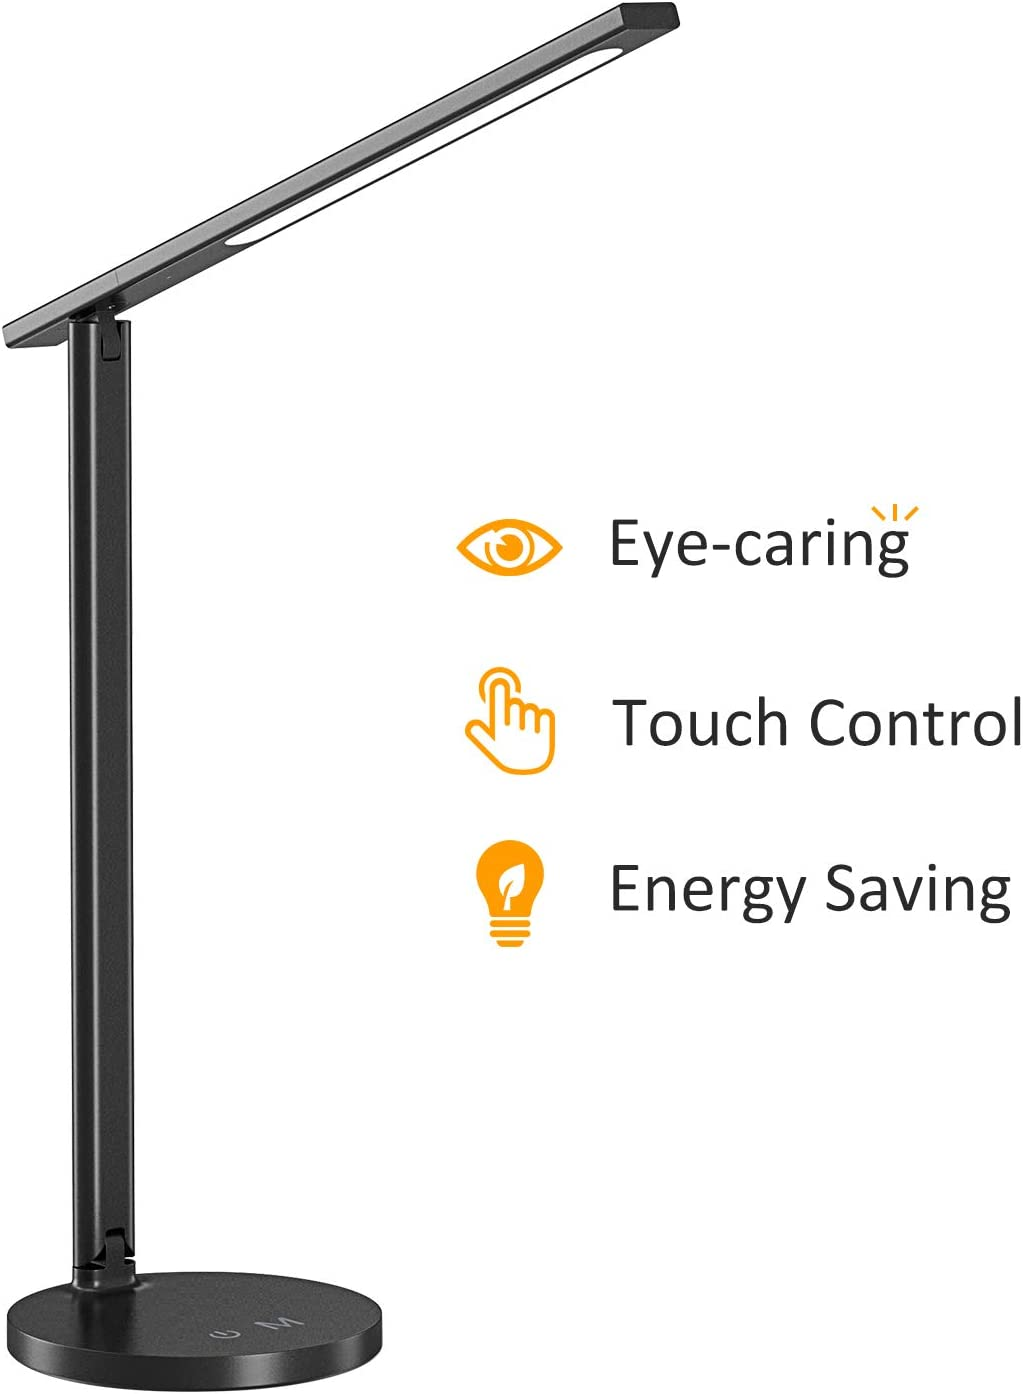 LED Desk Lamp, STOON Eye-Caring Aluminum Alloy Reading Lamp with 3 Color Modes 3 Brightness Levels for Kids Adult, Folding Dimmable Office Table Lamp, Touch Control, 5V 7W, Black